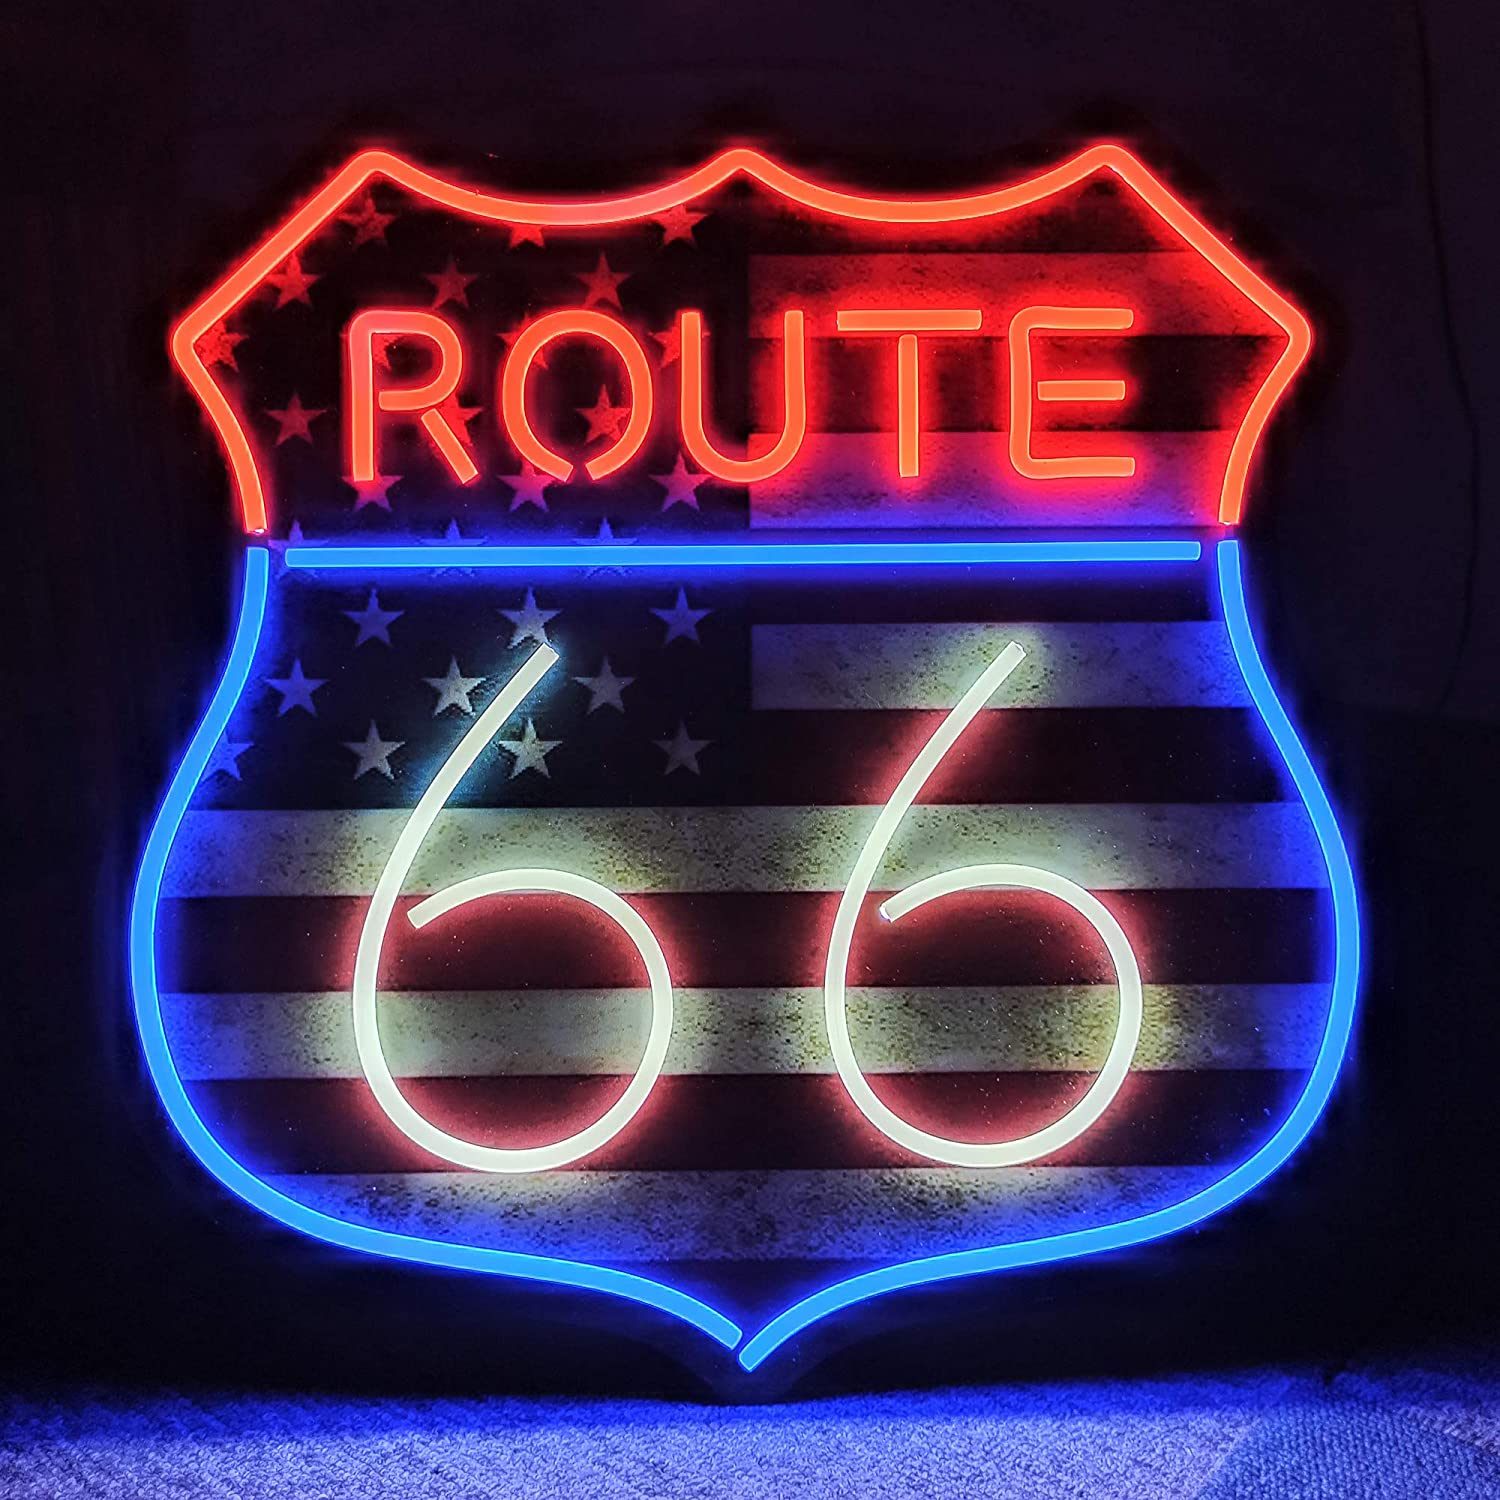 66 Route LED Neon Light Signs for Beer Bar Club Bedroom Office Hotel Pub Cafe Wedding Birthday Party Man Cave Art Wall Lights (White)